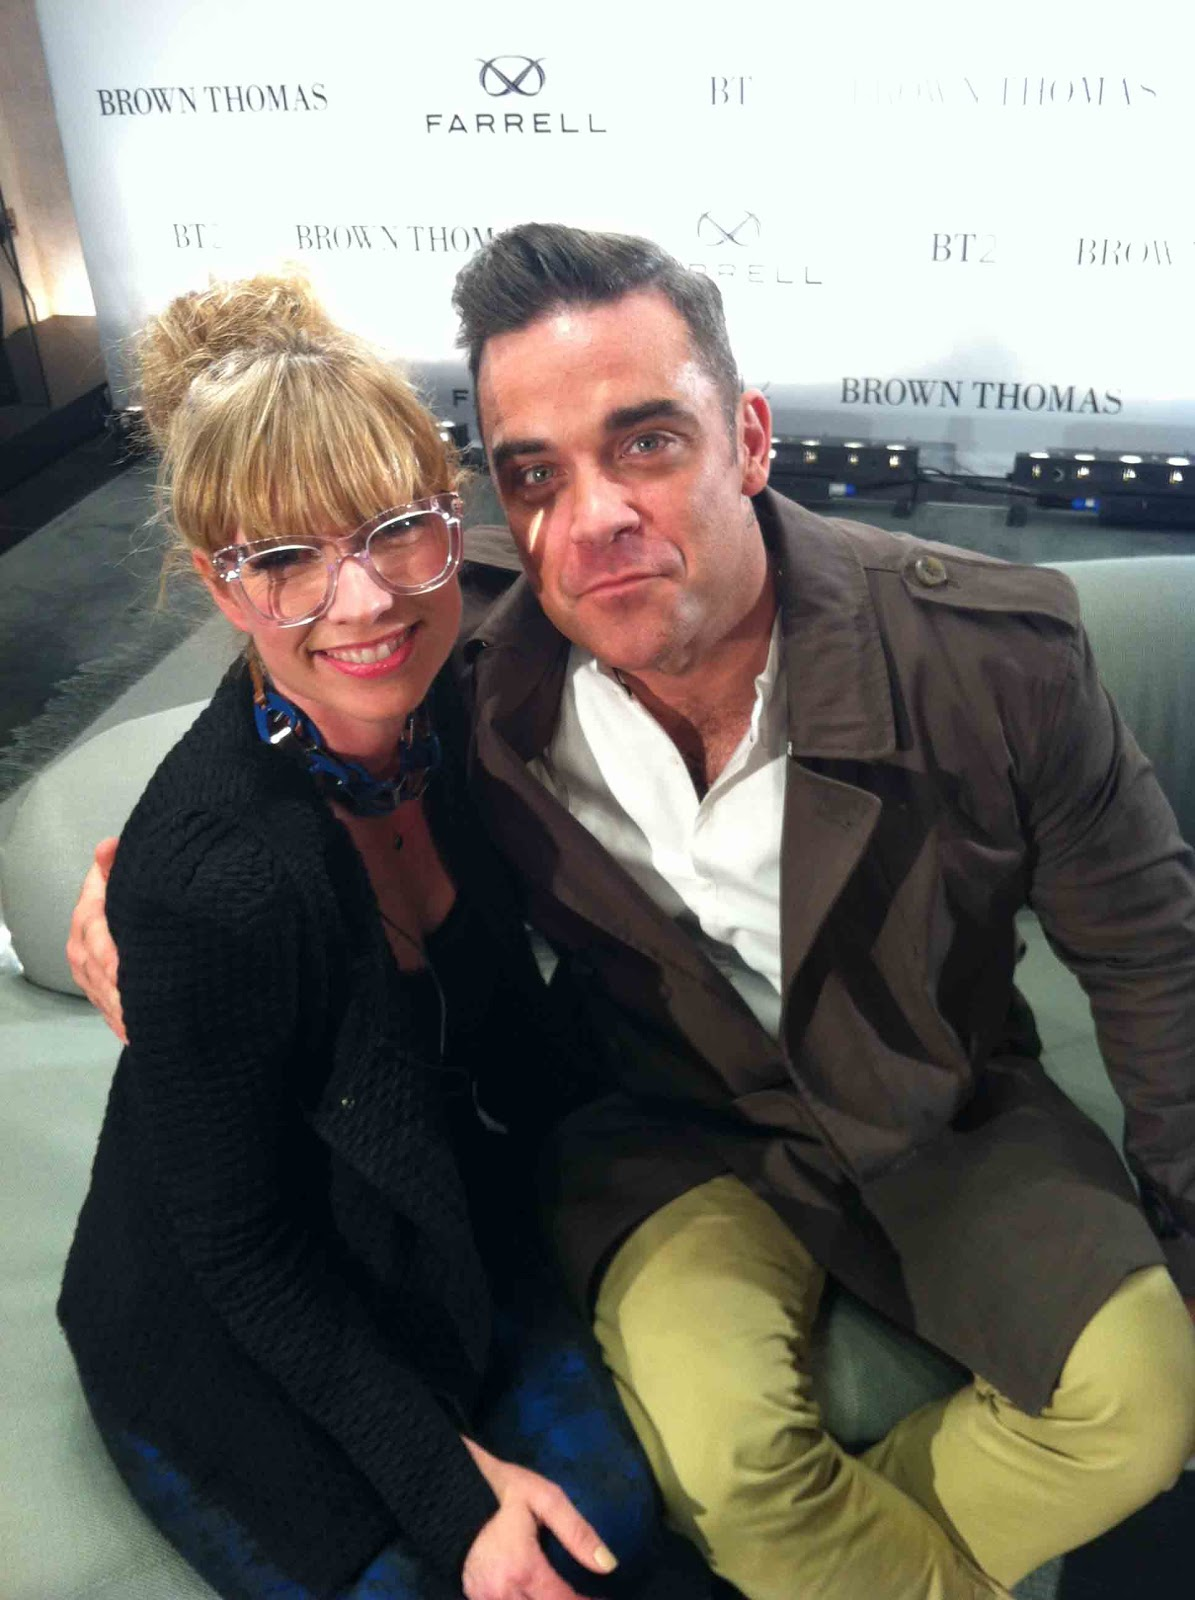 http://1.bp.blogspot.com/-5wib66MQJlw/UIrBKC6rErI/AAAAAAAAHf4/OkUzhjC83Ug/s1600/Off-the-Rails-Sonya-and-Robbie-Williams+(1).jpg